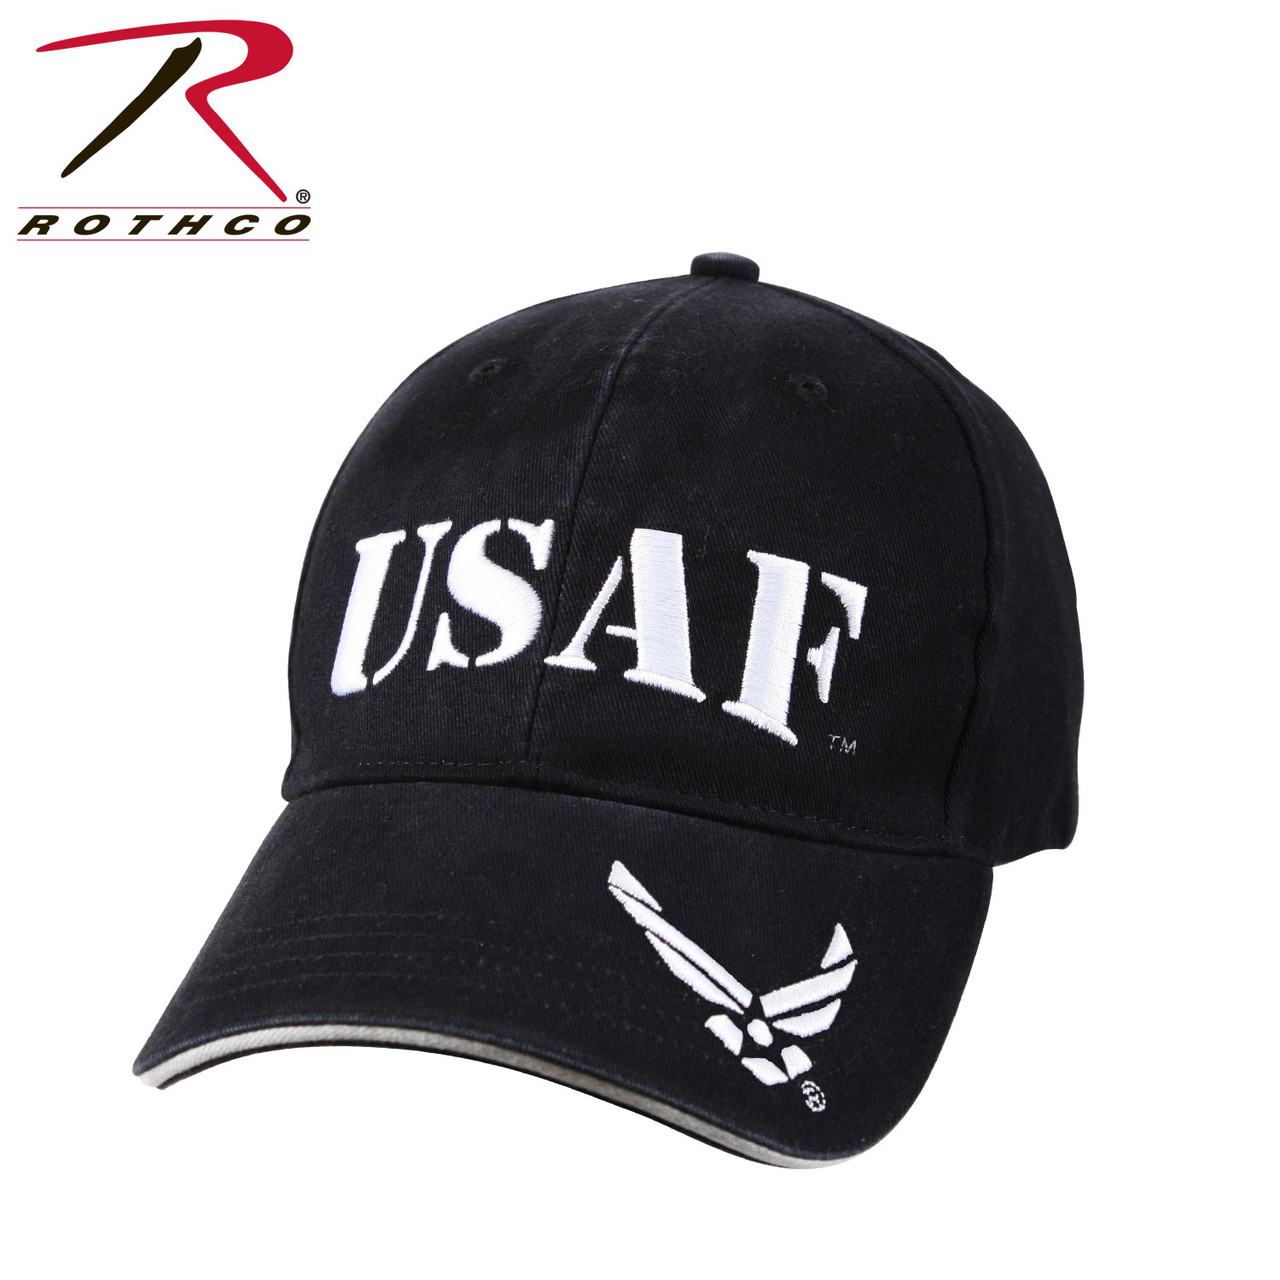 404d5caa9e5bcd Rothco USAF Cap Embroidered Low Profile Cotton (Item #9886) - Washed Navy  Blue - USMILITARYHATS.COM